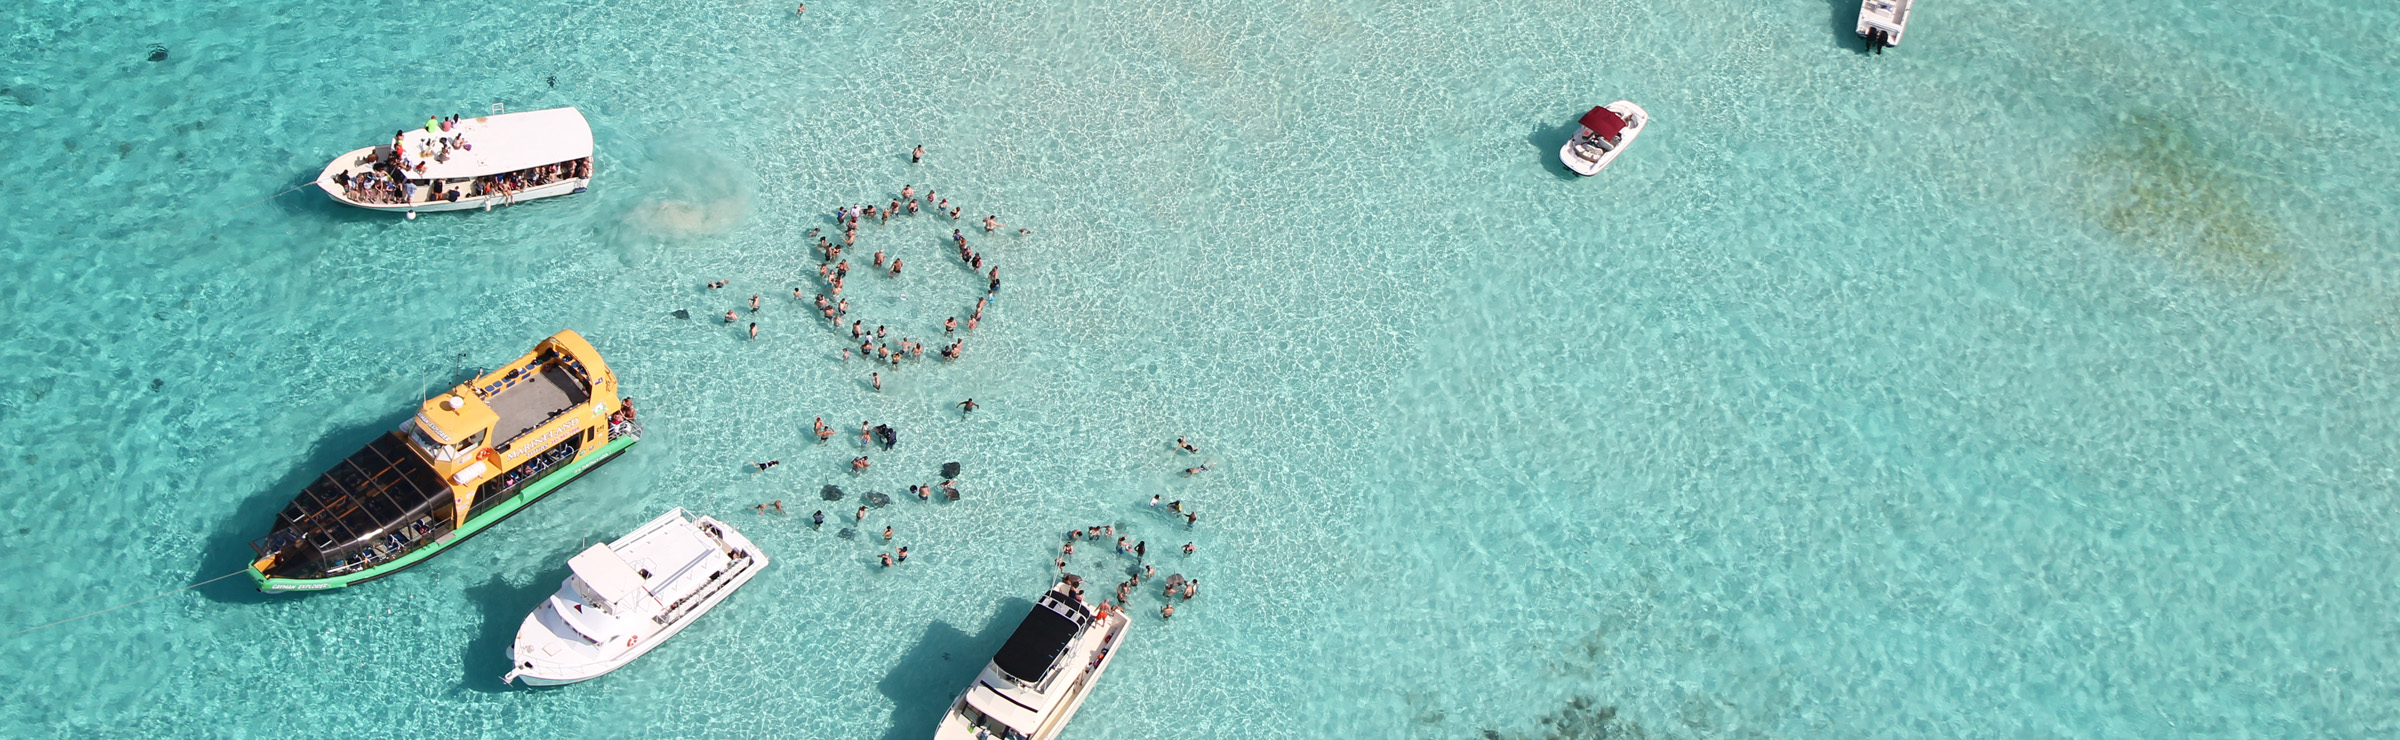 Stingrays in shallow water in Cayman Islands - by Katie Thebeau